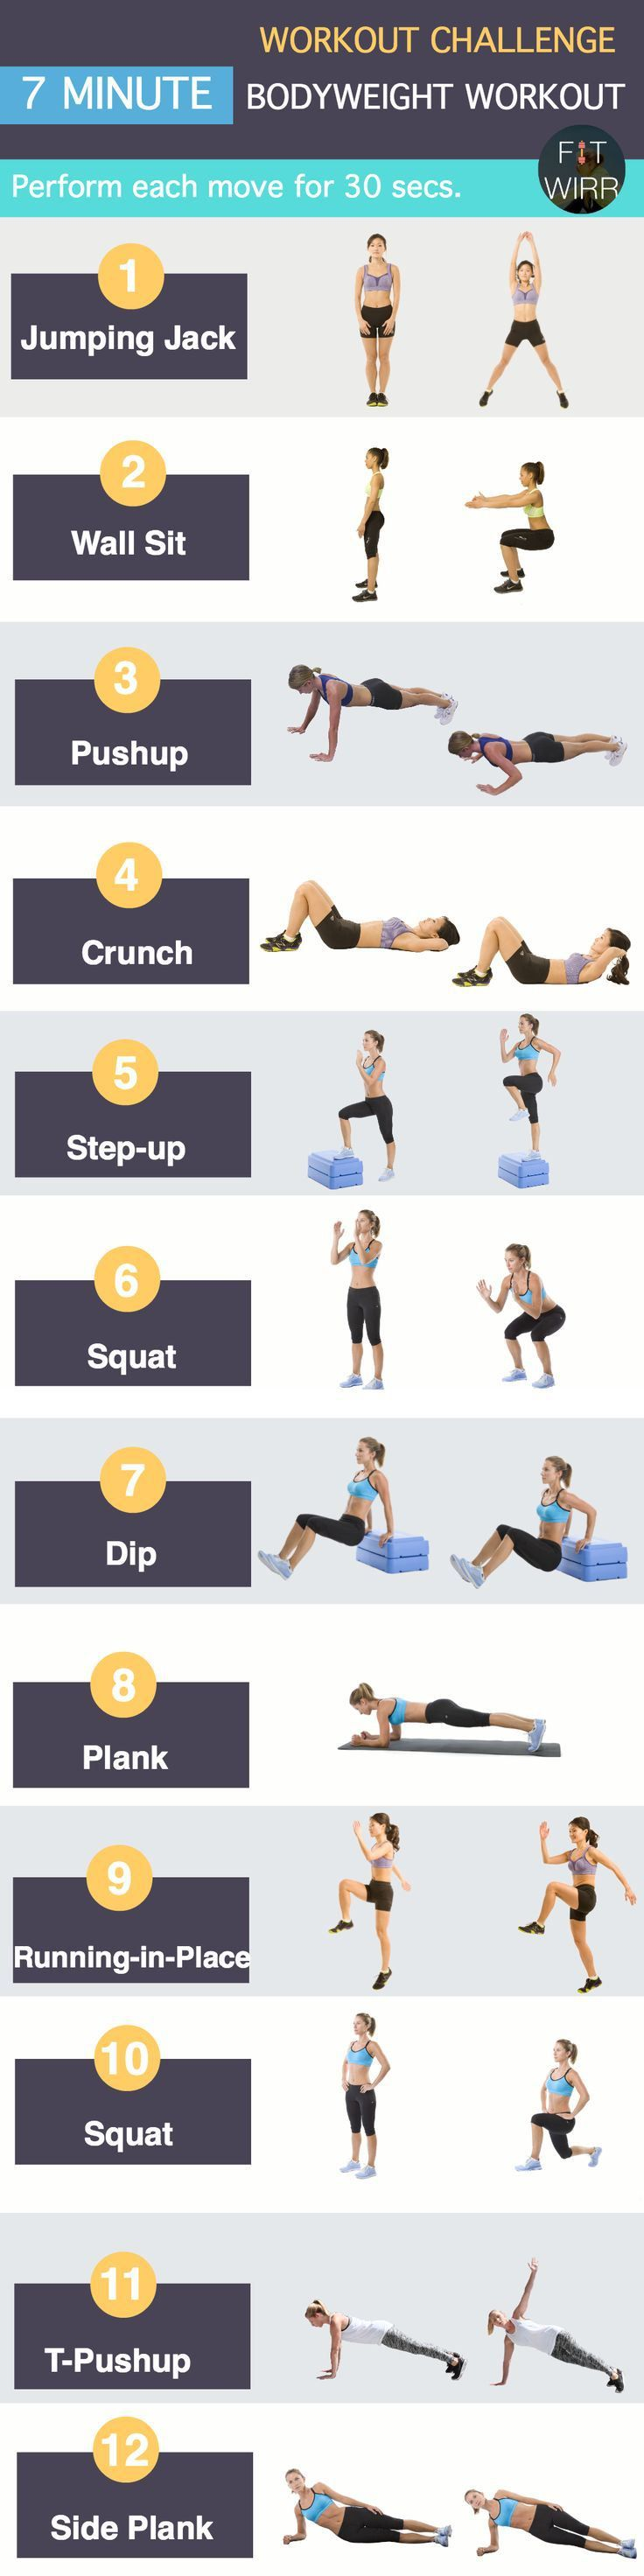 Seven Minute Workout Challenge